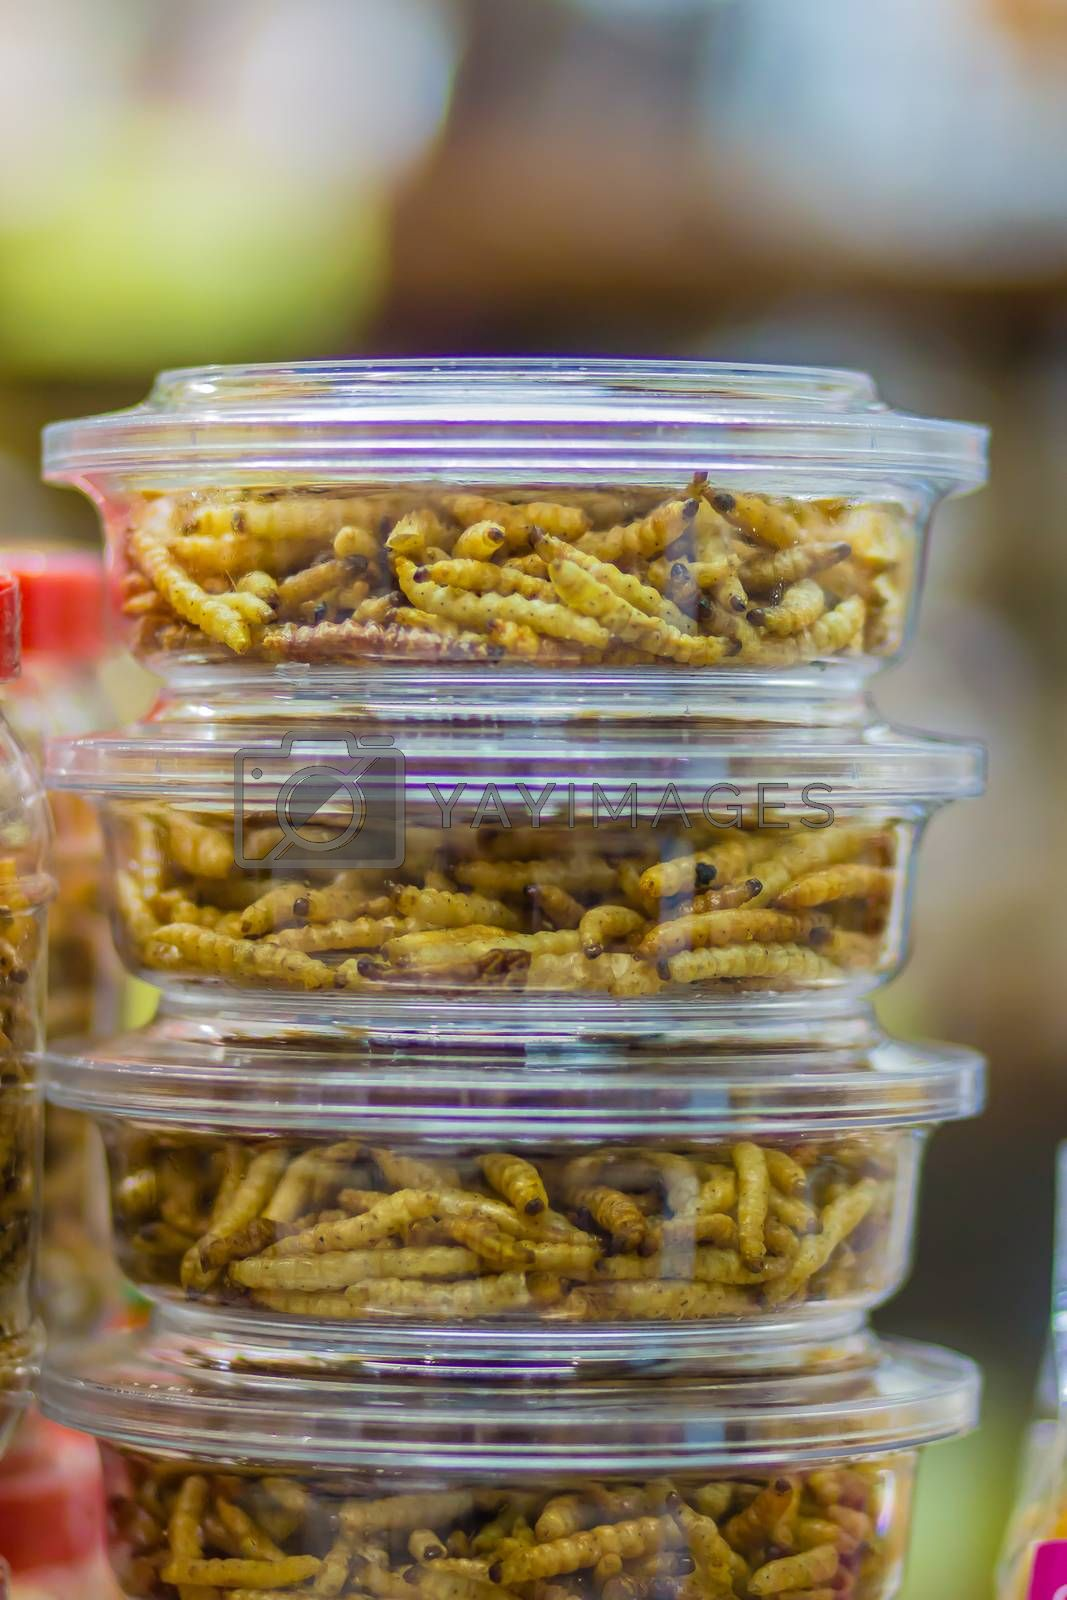 Fried bamboo worms packing in the market for sale. Bamboo caterpillar (Omphisa Fuscidentalis), fried bamboo worms that ready to eat and for souvenir.